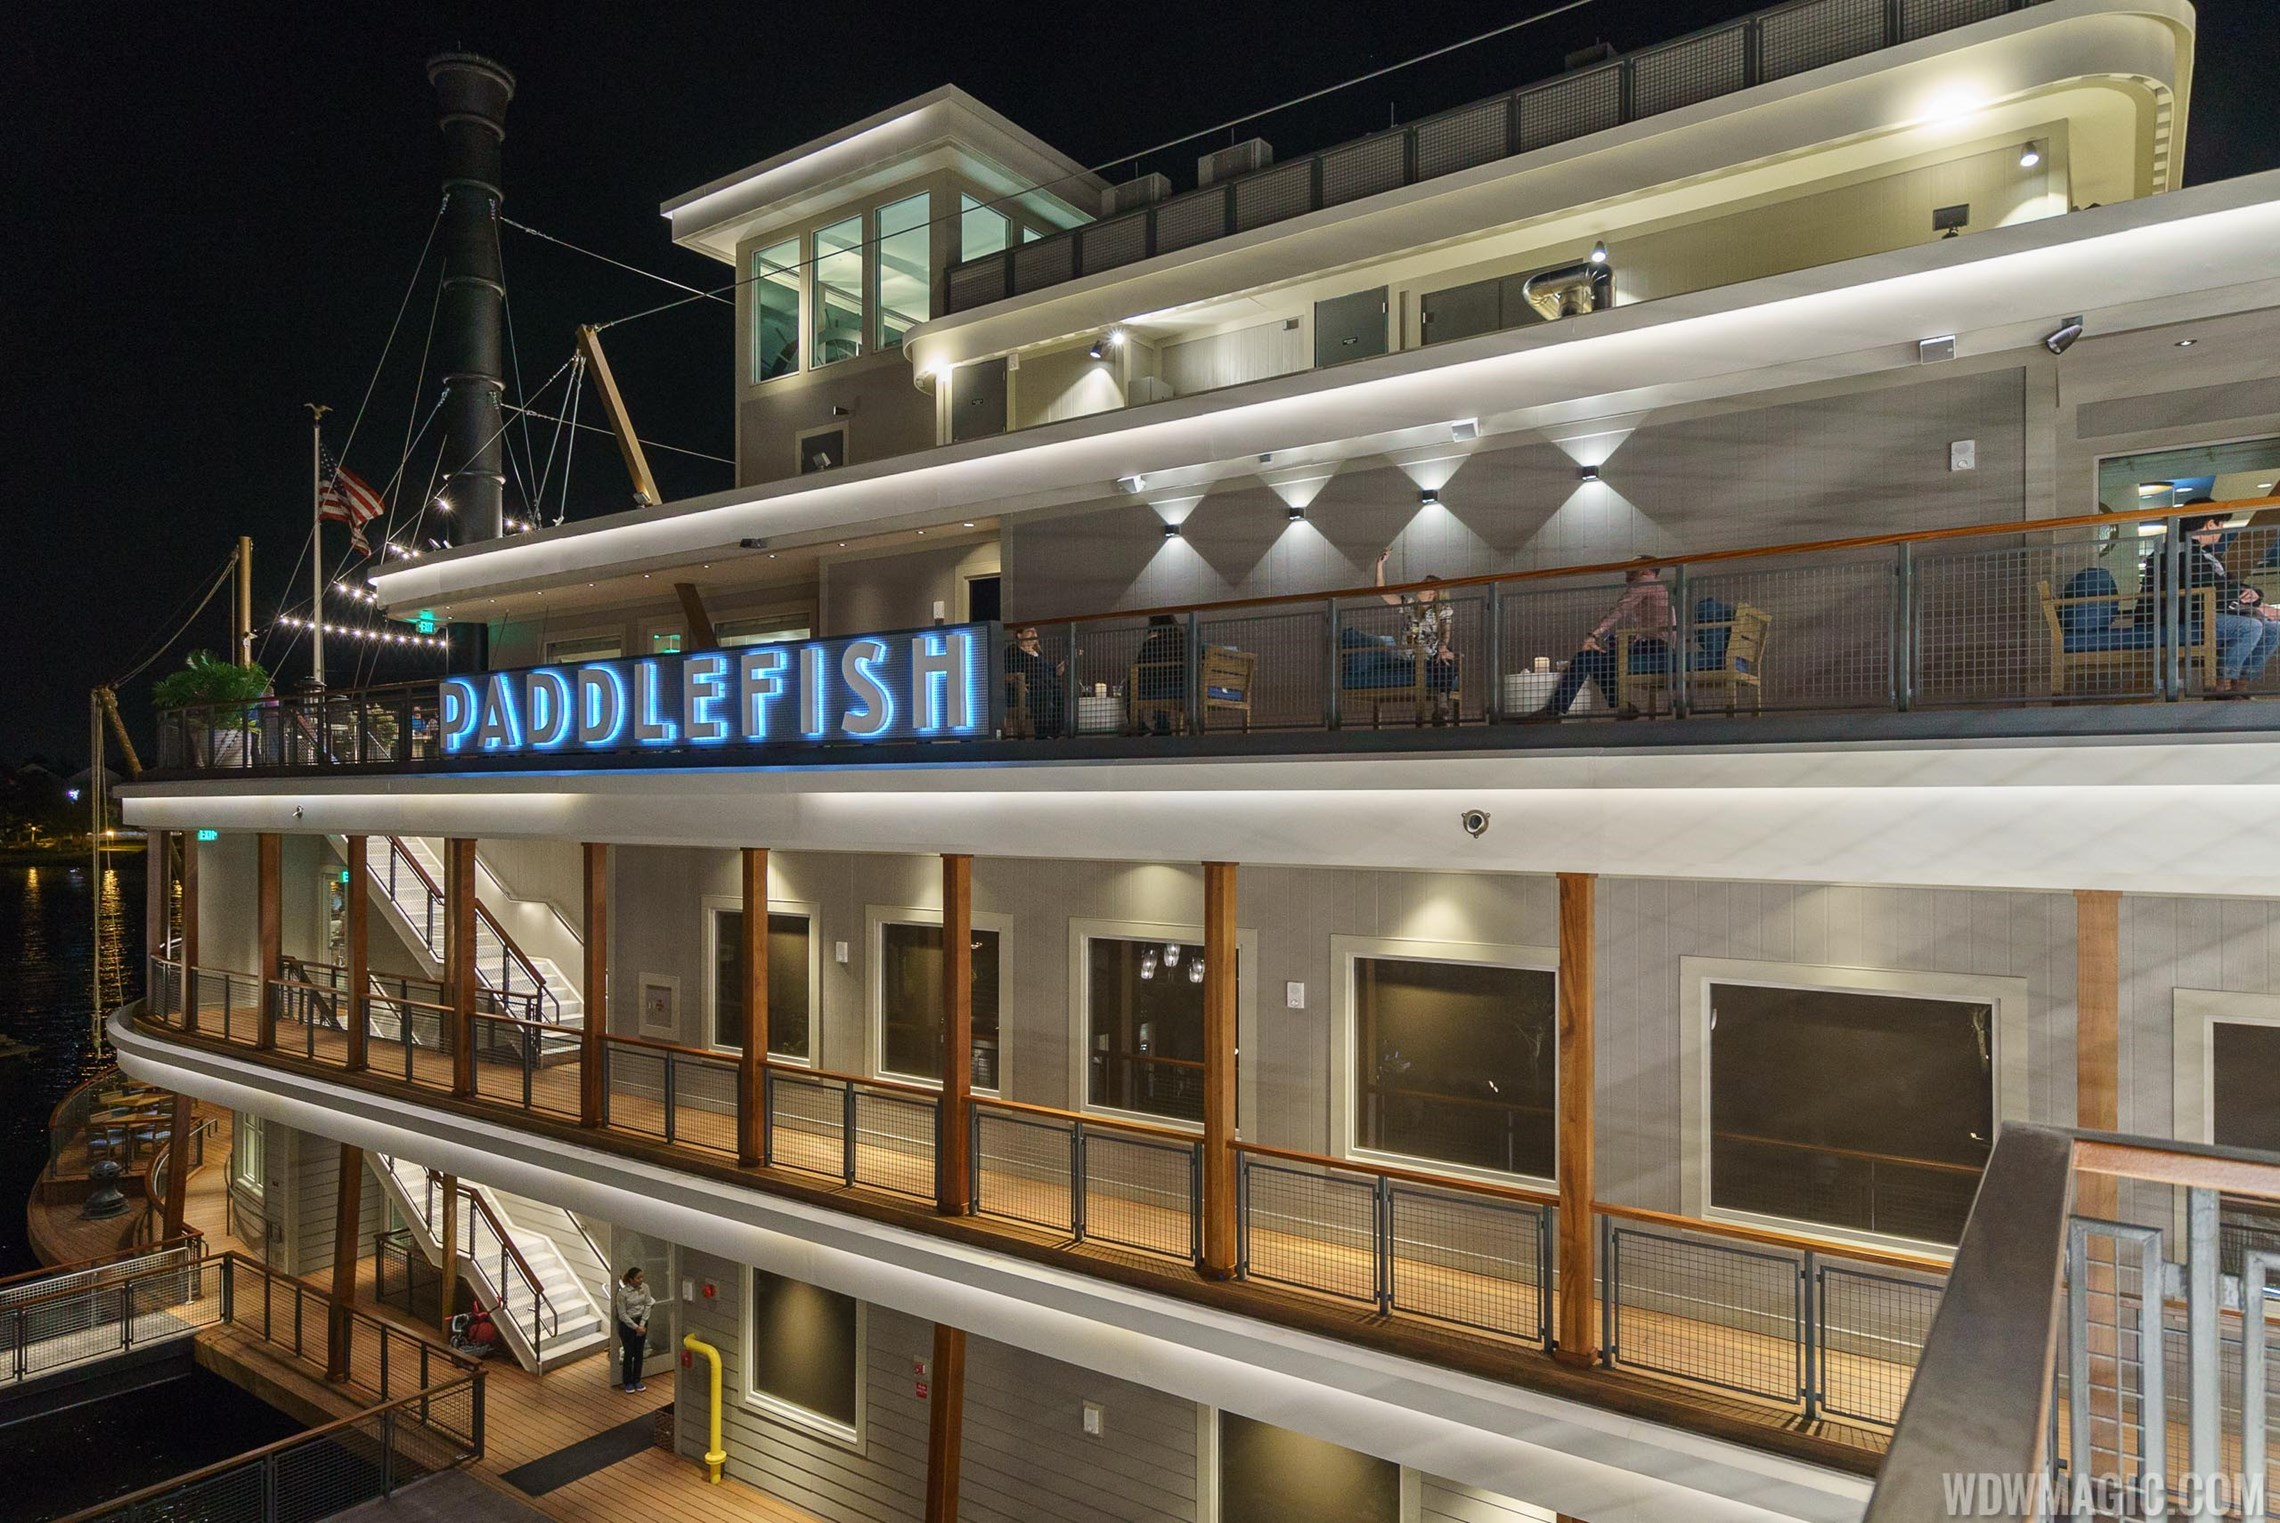 Modern exterior house colors - Photos Tour The New Paddlefish Restaurant Now Open At Disney